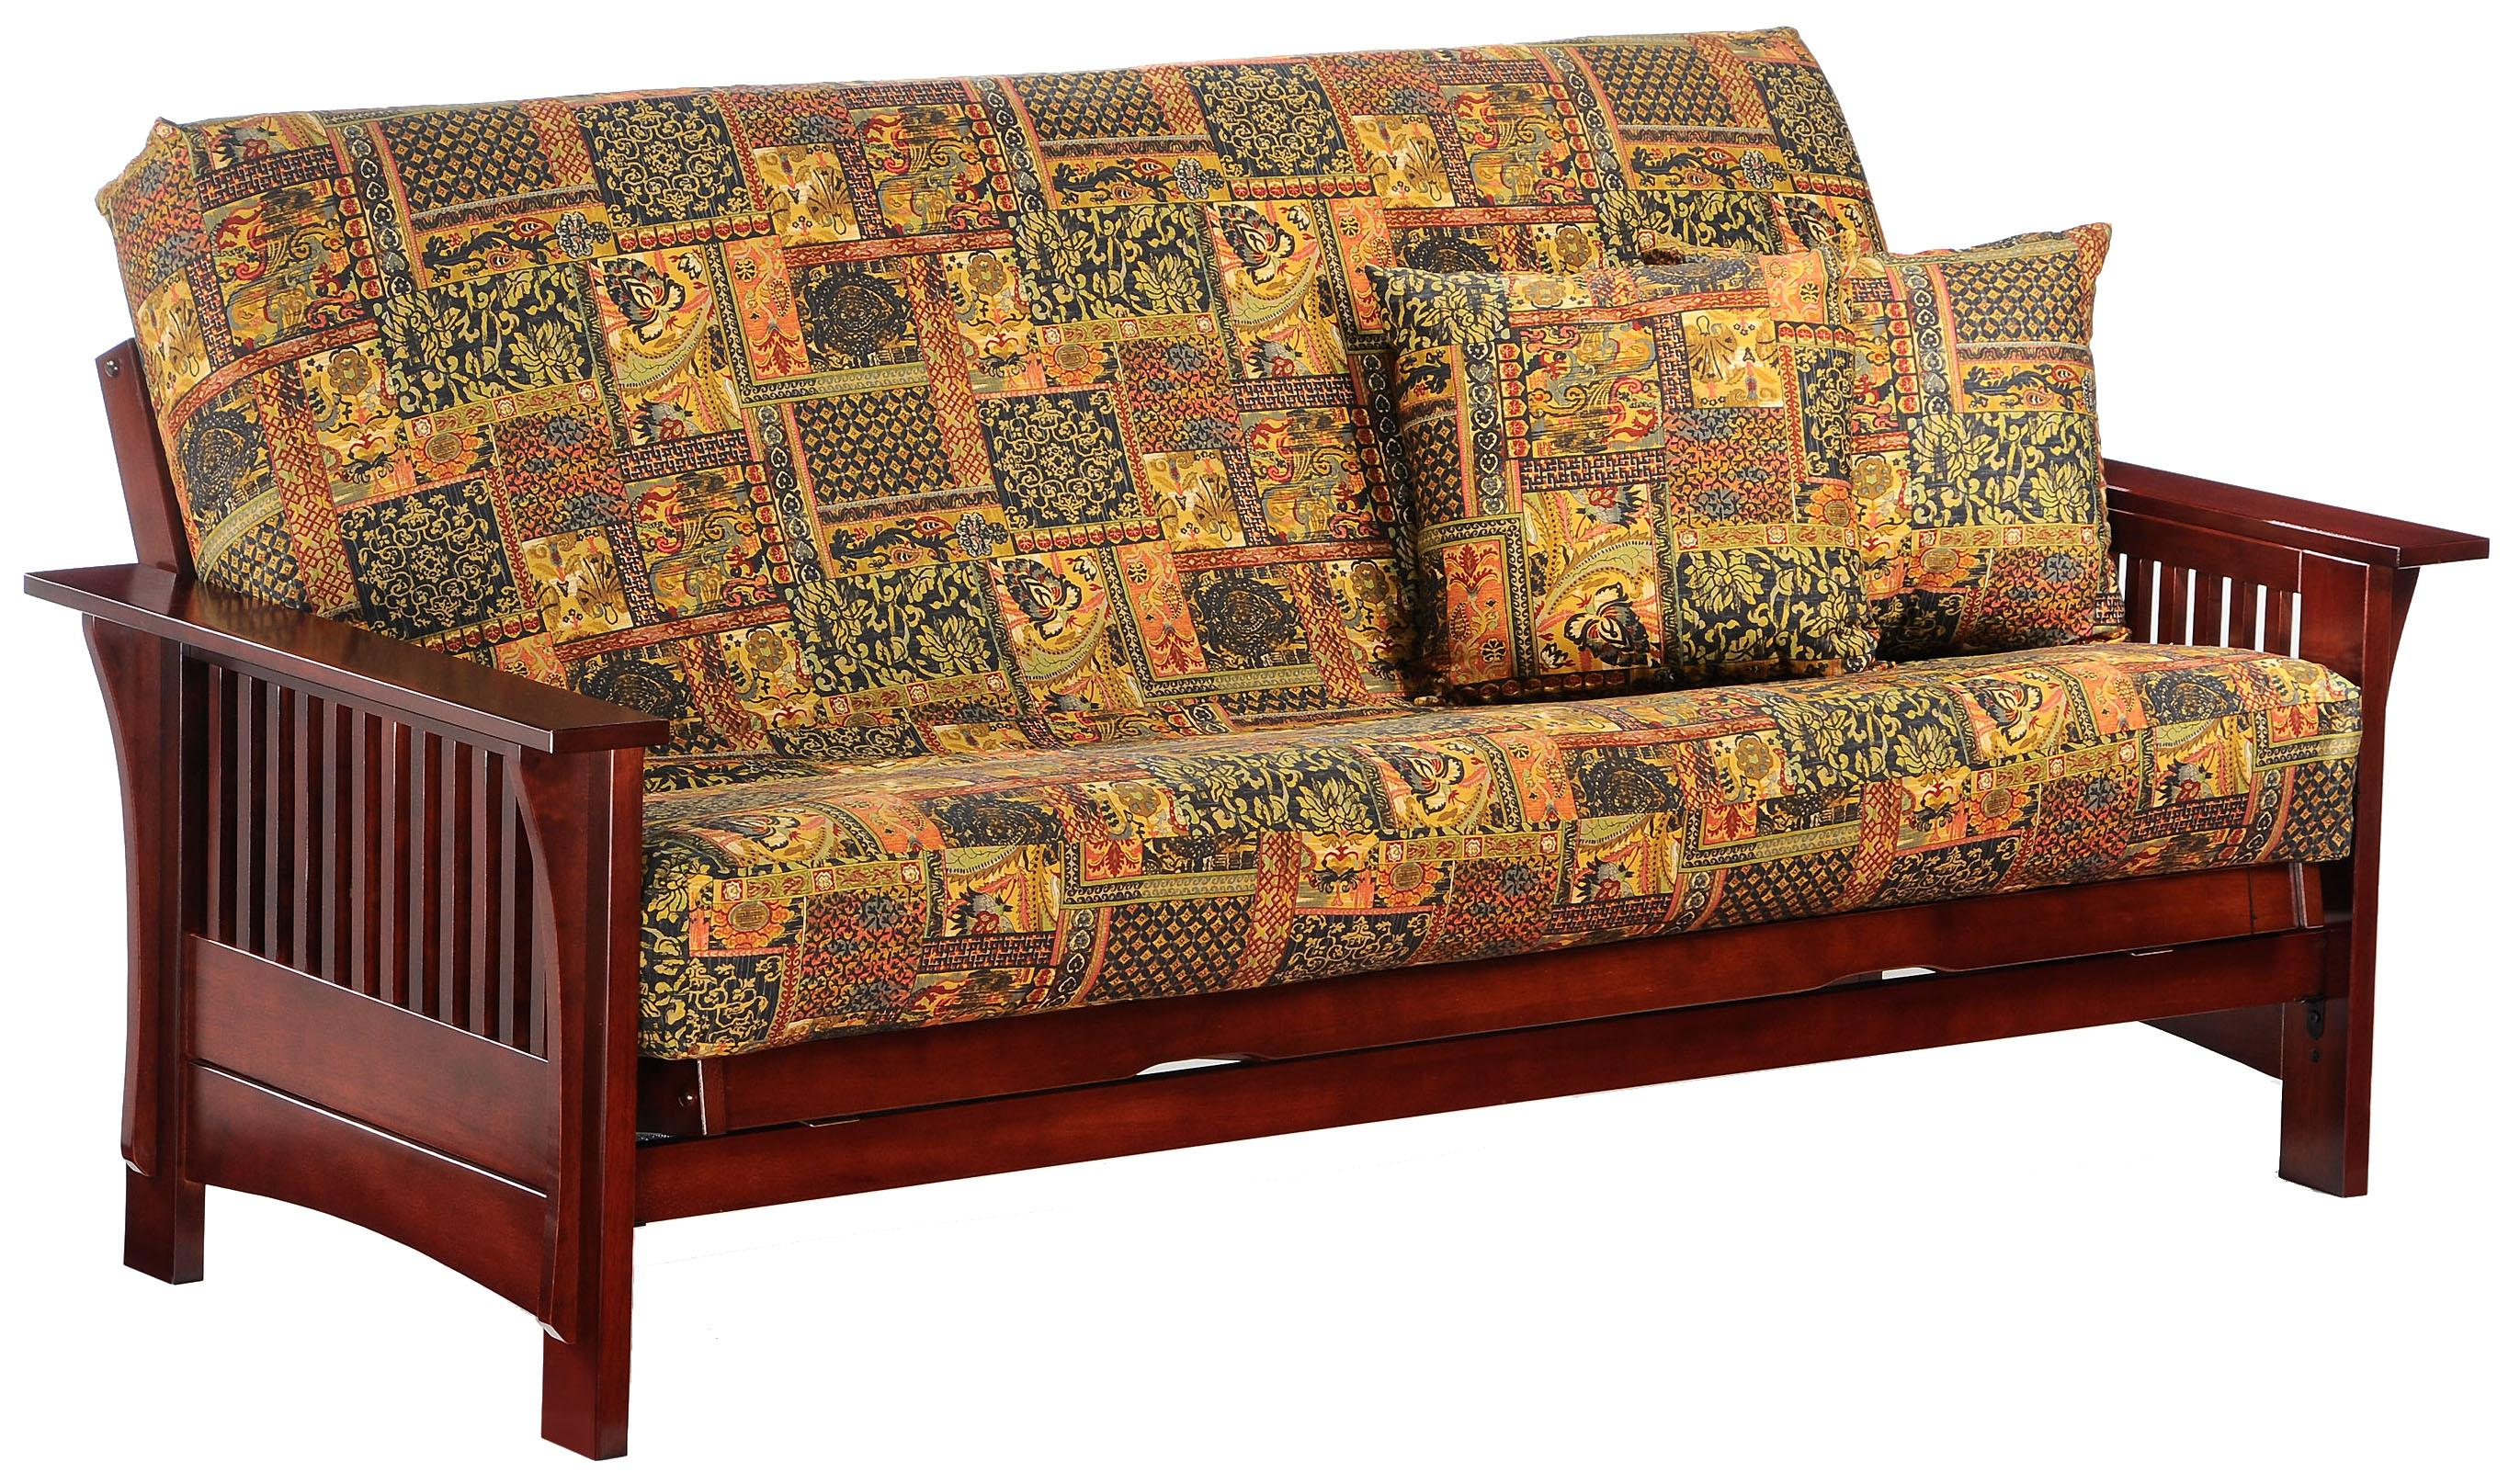 Autumn Rosewood Queen Size Futon by Night & Day Furniture at Furniture and ApplianceMart